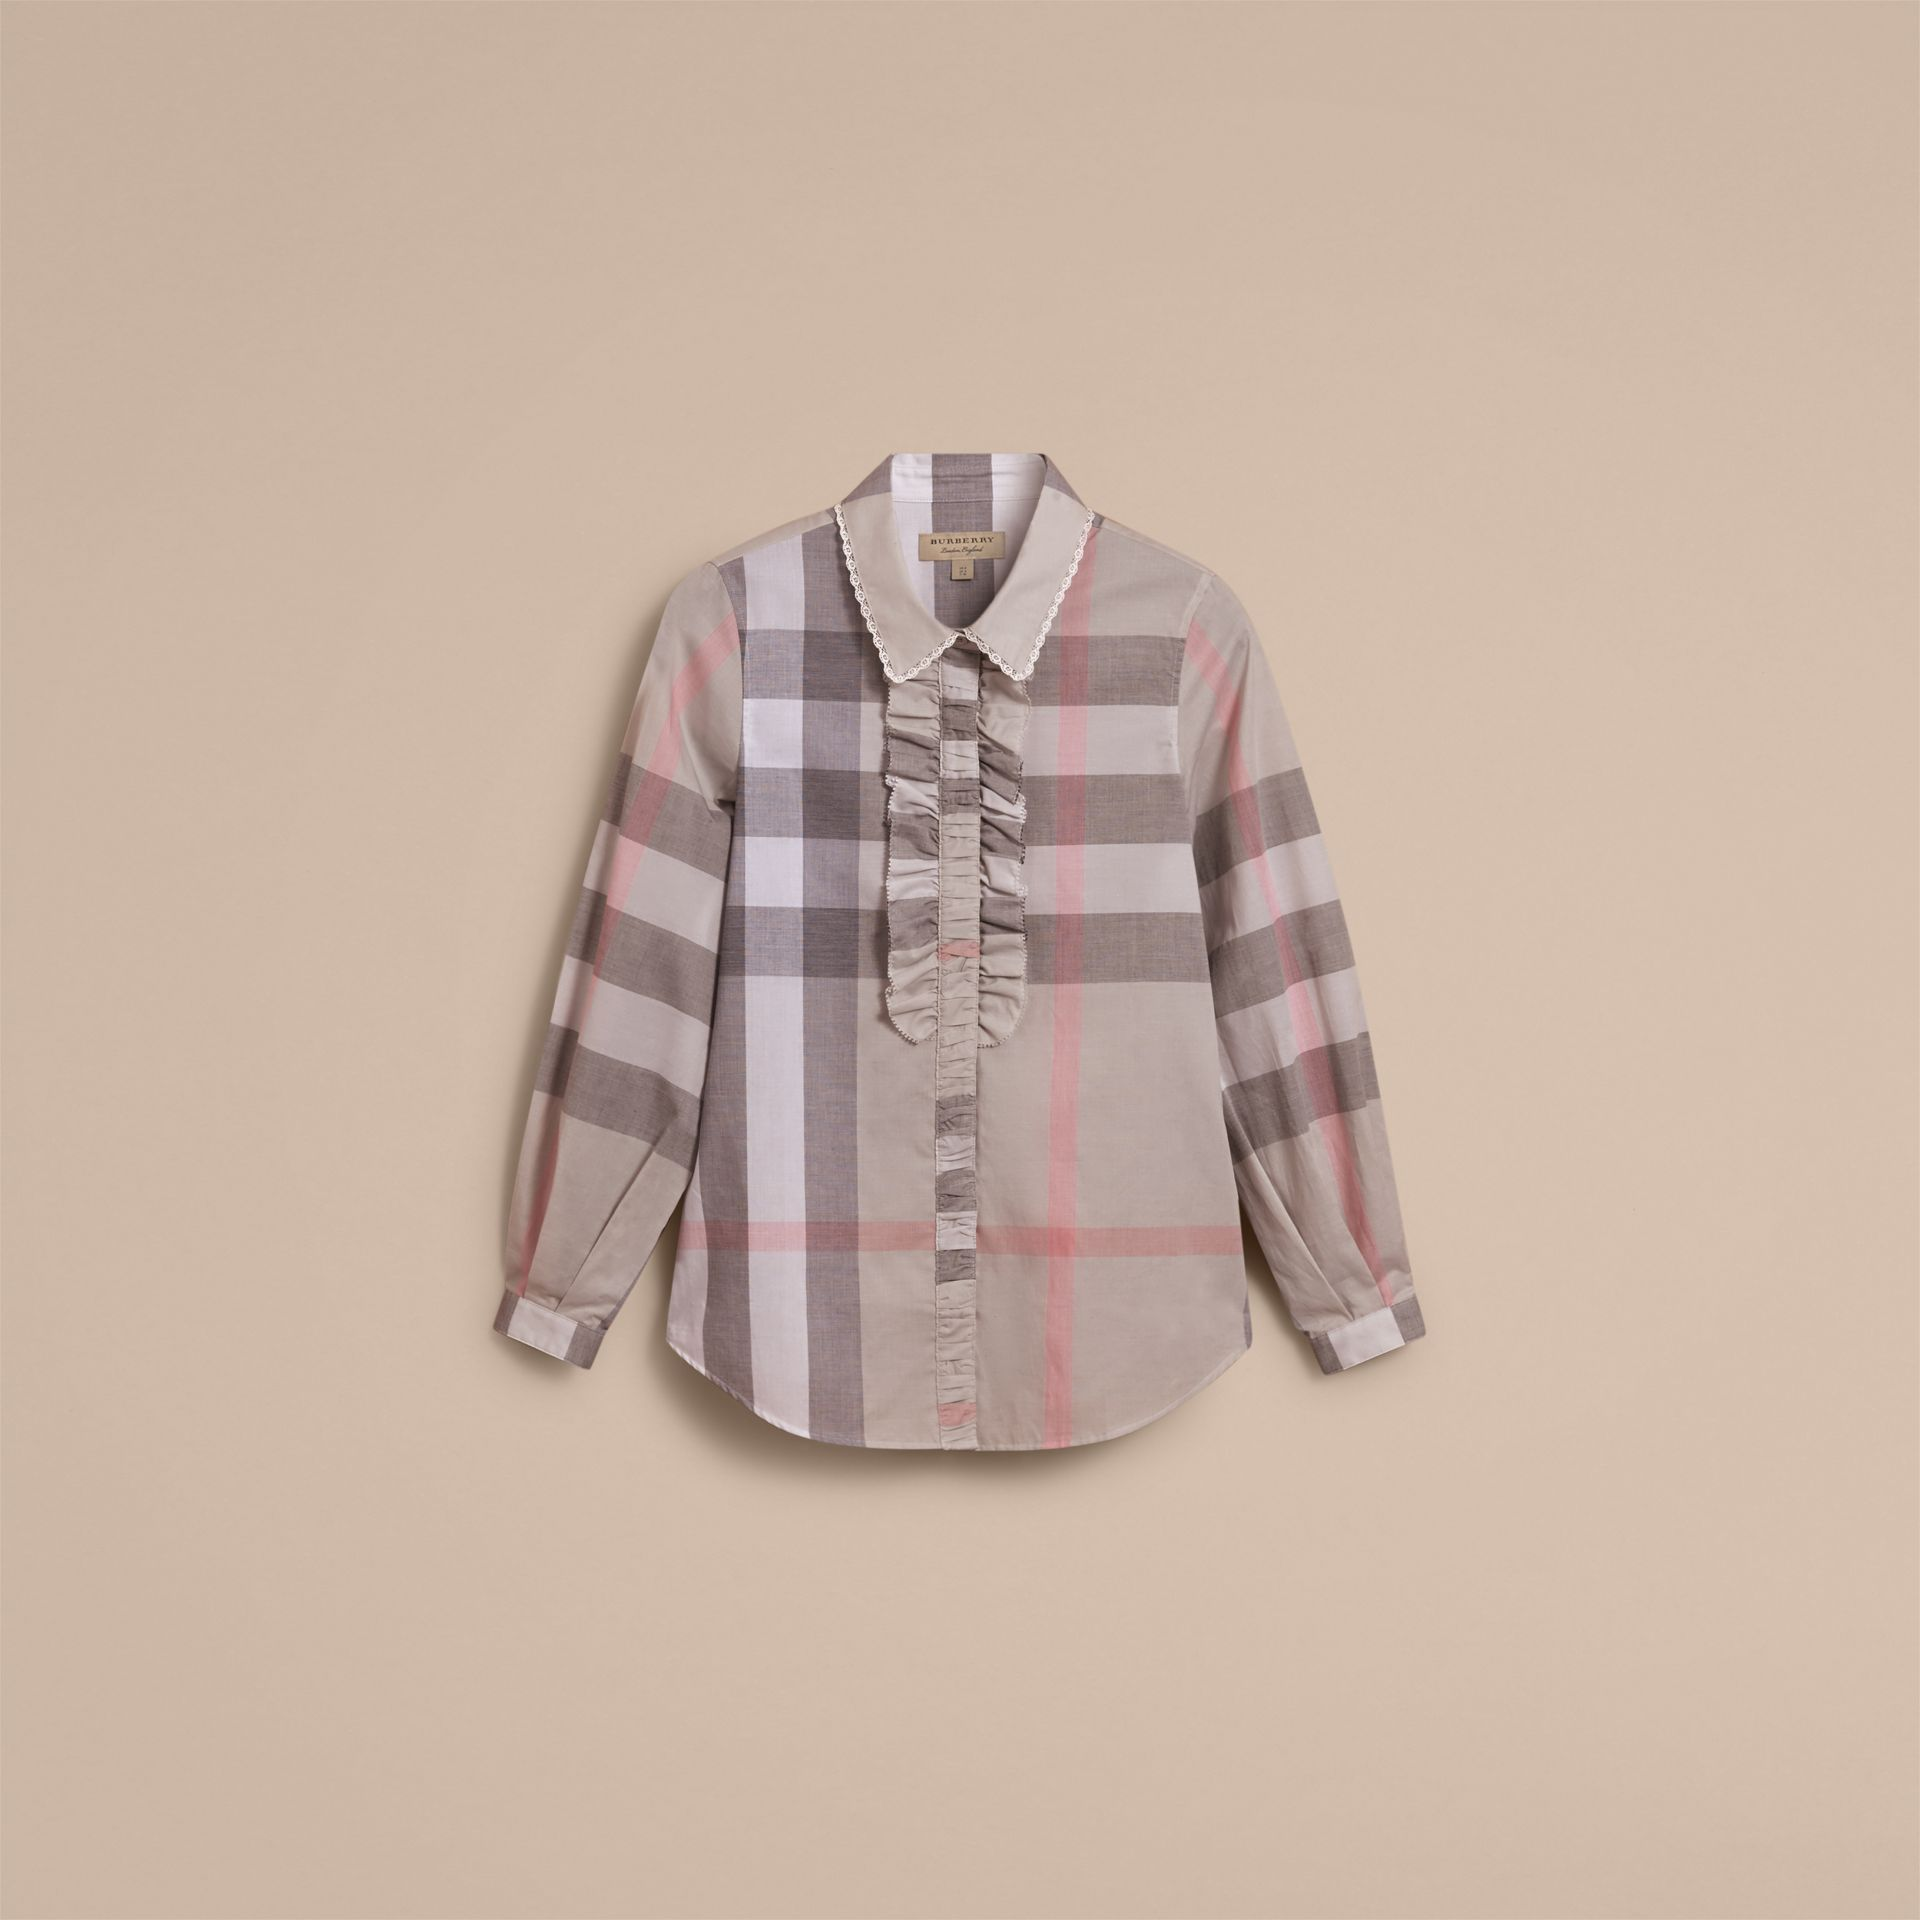 Ruffle Detail and Lace Trim Check Cotton Shirt in Pale Taupe - Women | Burberry - gallery image 3